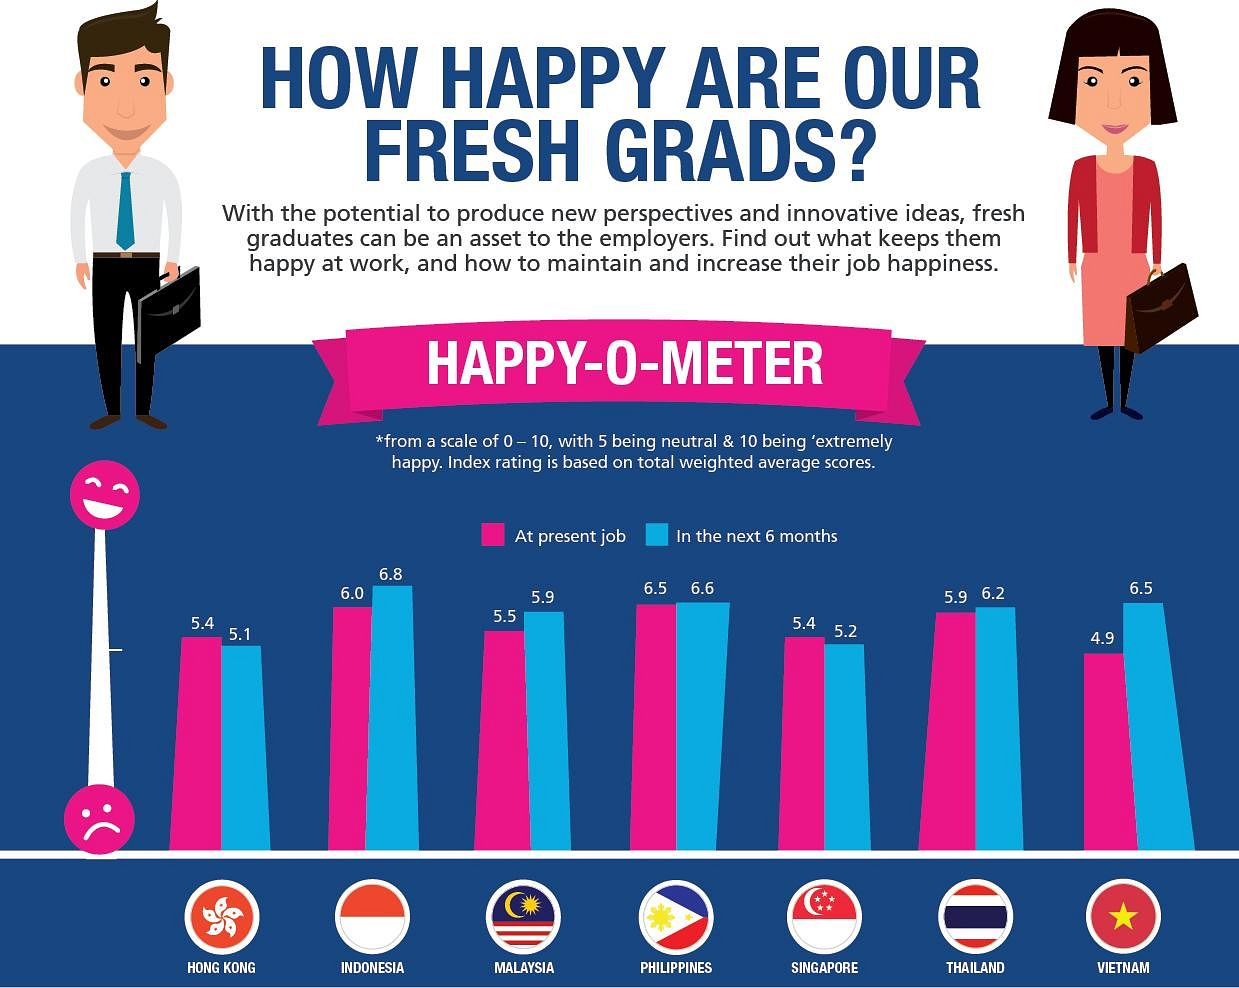 Infographic] Vietnam's Recent Grads Least Satisfied in Their Current